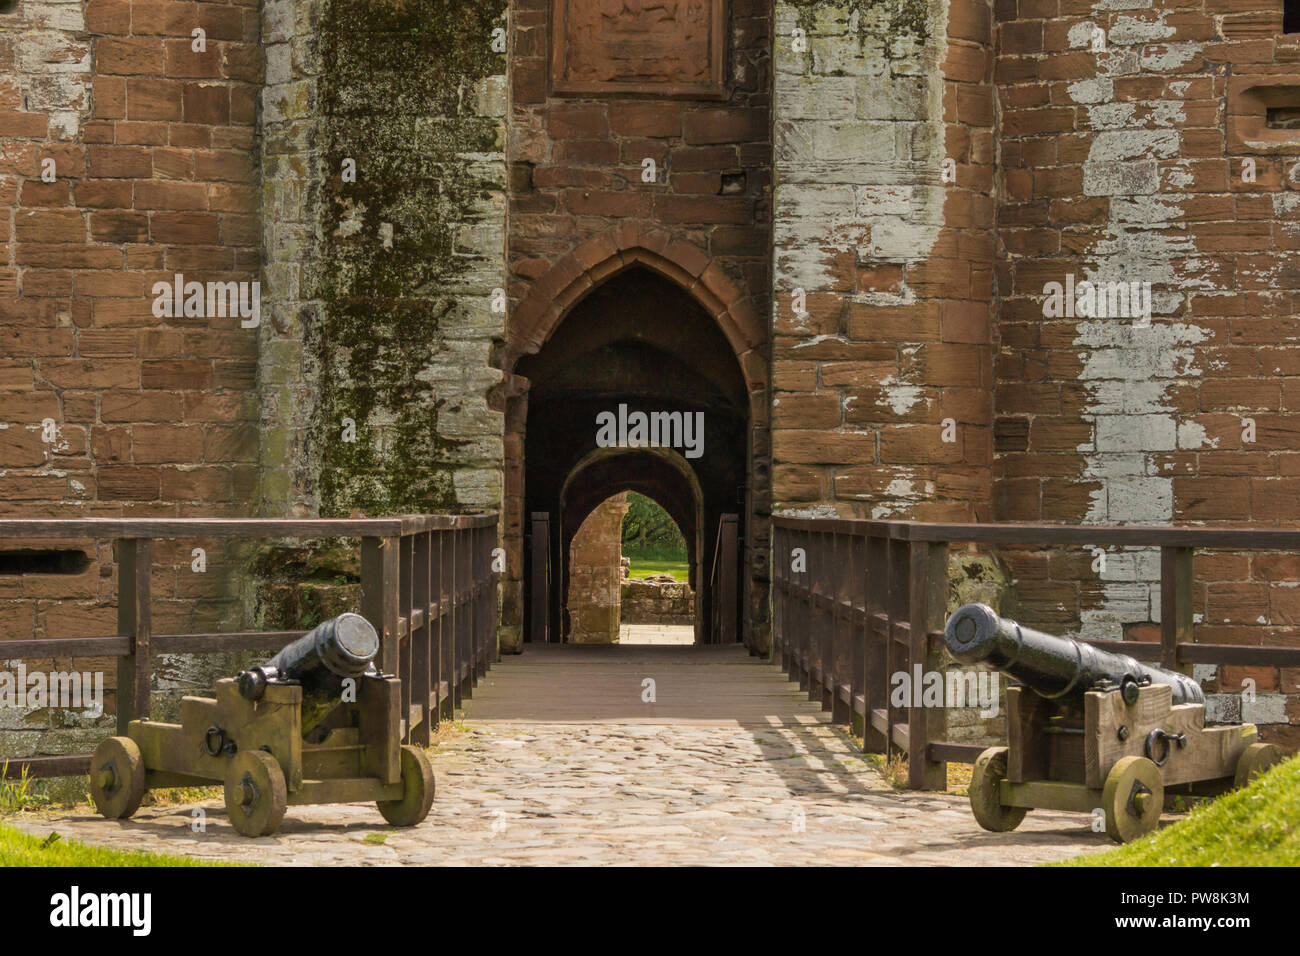 Shearington, Scotland, UK - June 18, 2012: Closeup of entrance gate into brown stone Caerlavarock Castle features bridge over moat and two sealed off  - Stock Image